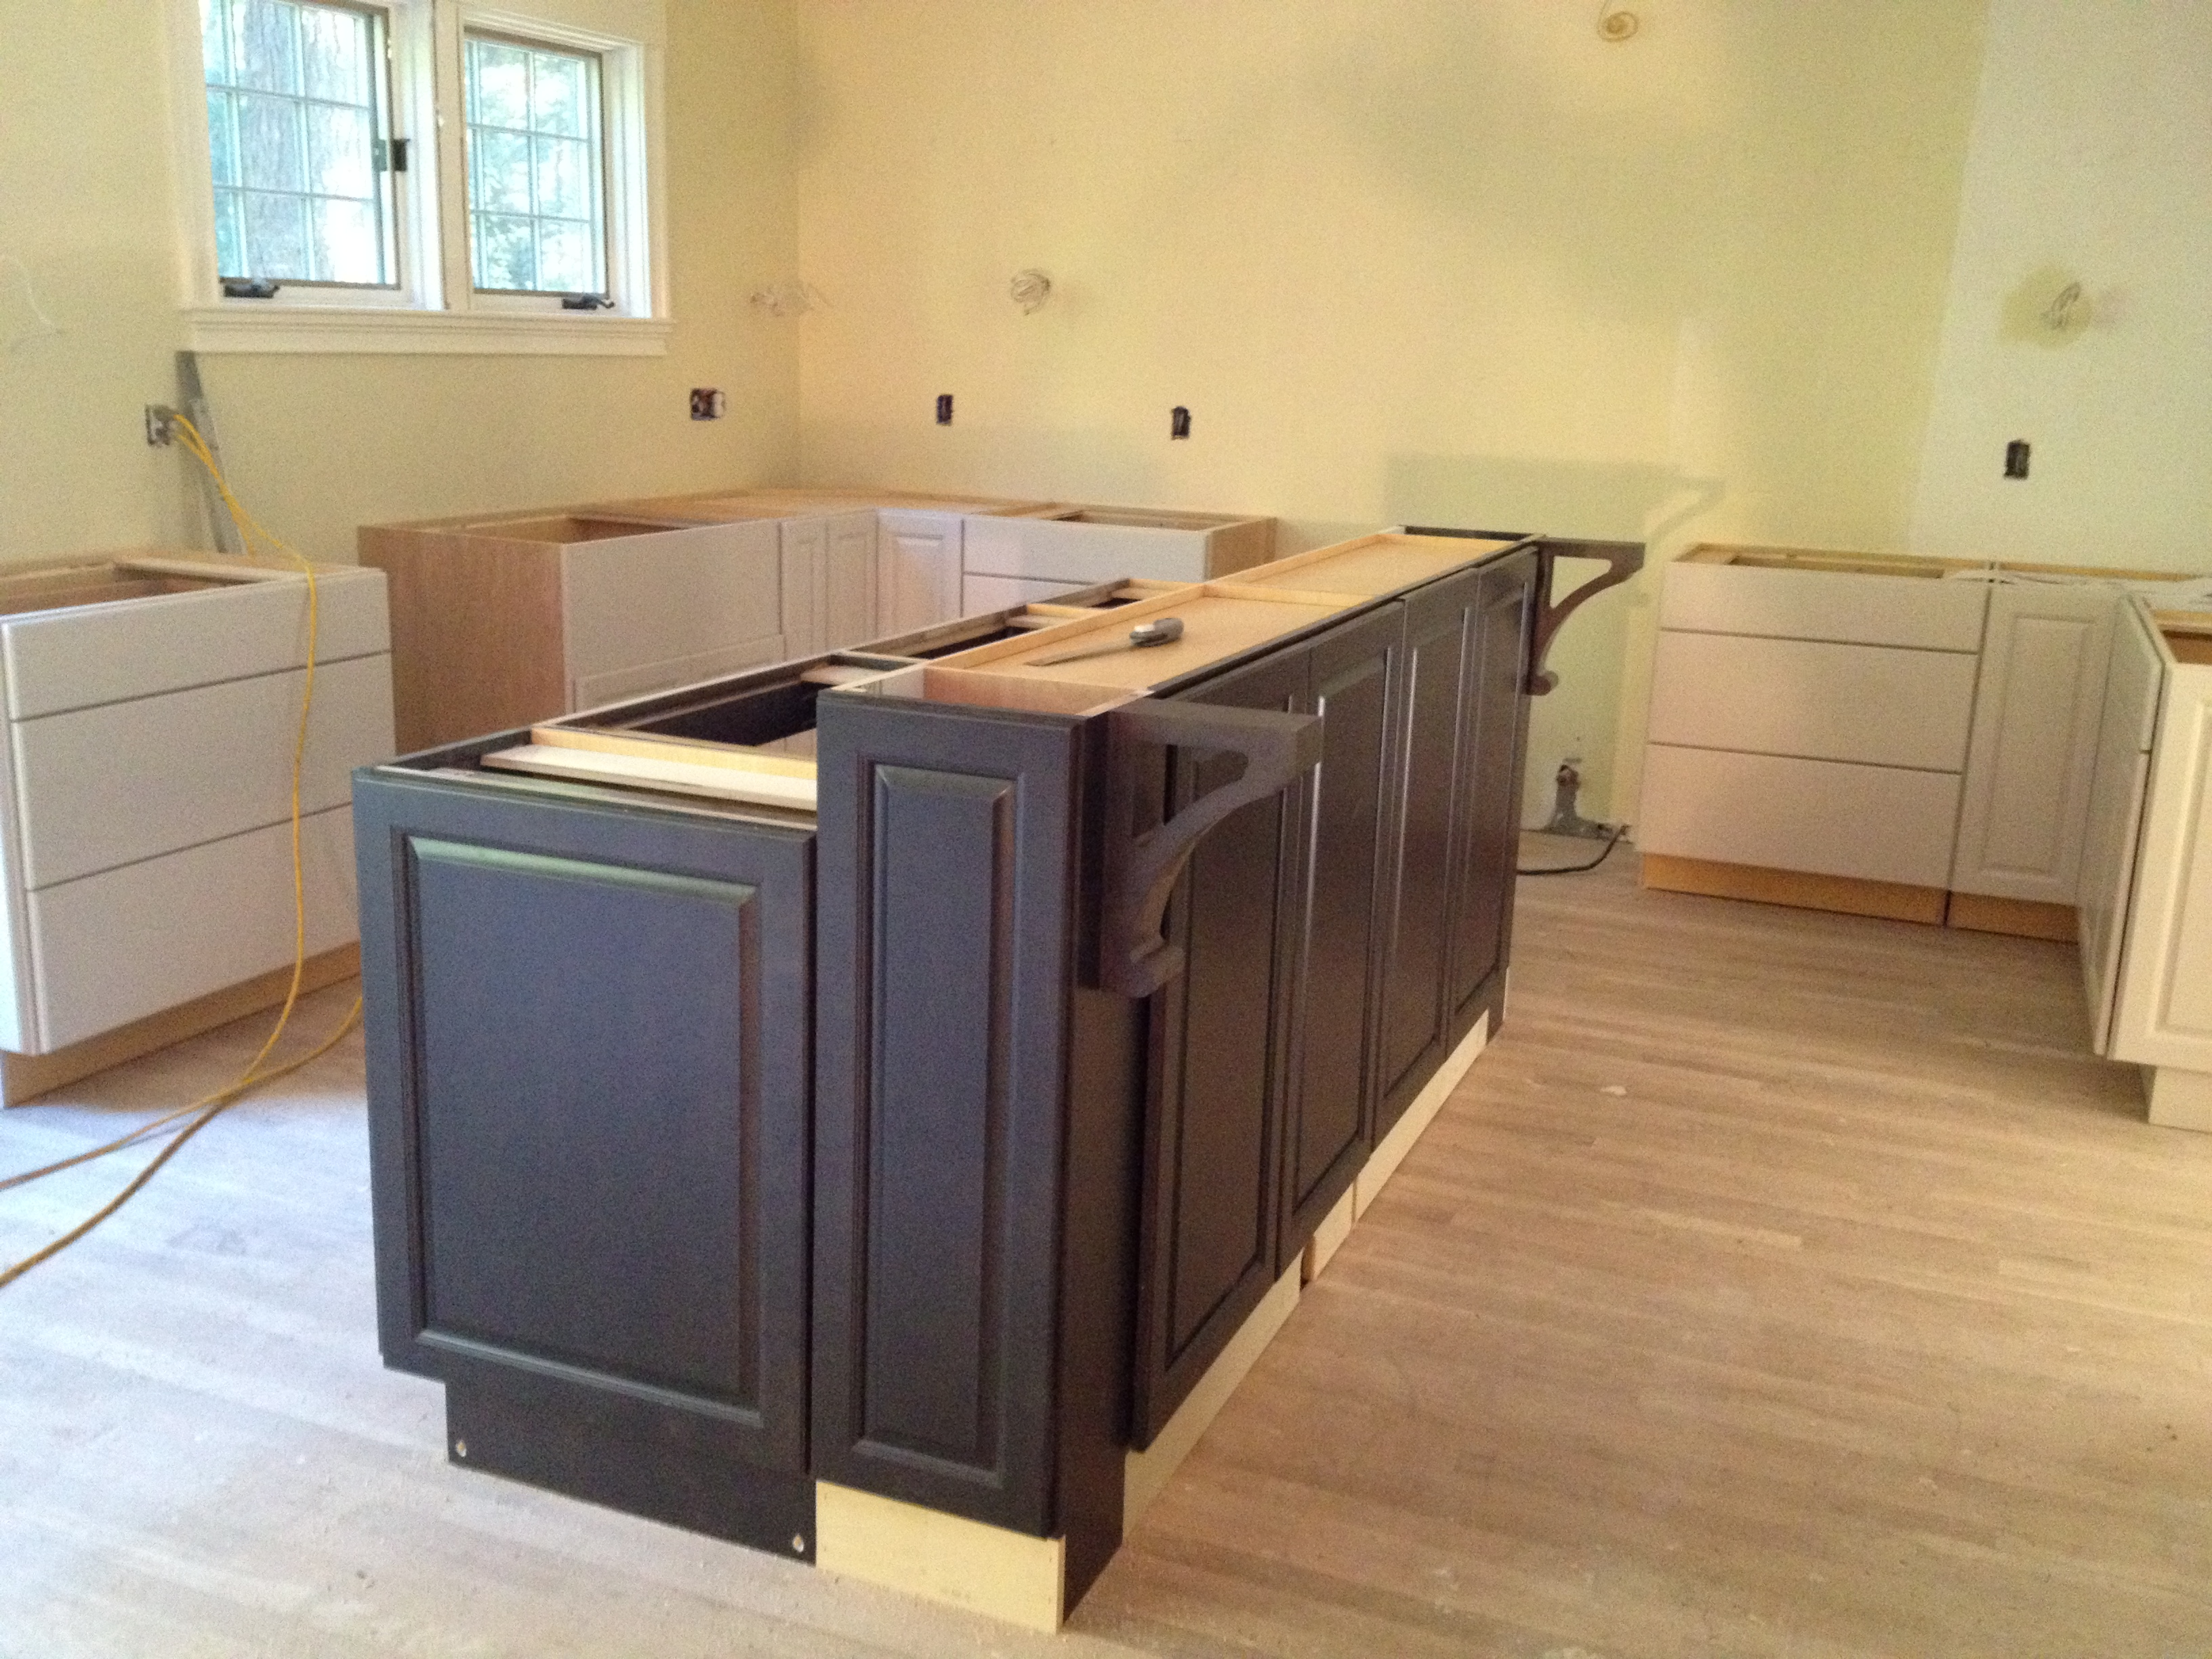 diy building a kitchen island with cabinets pdf download